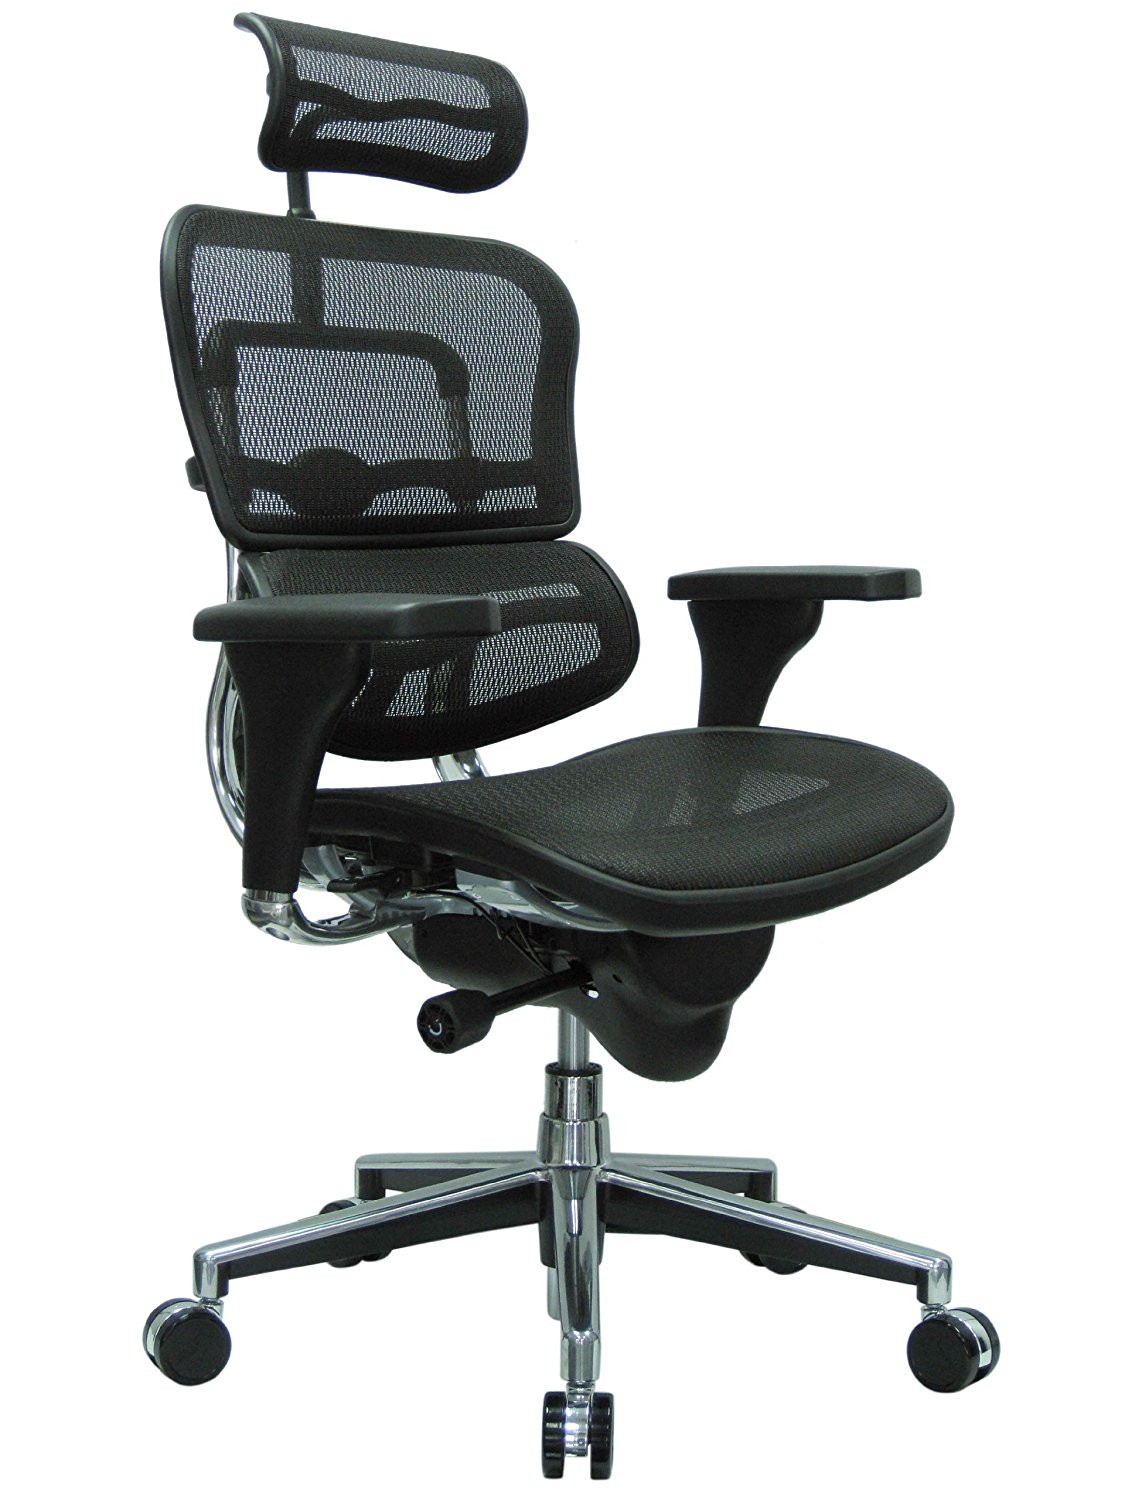 best office chair for back support 2018